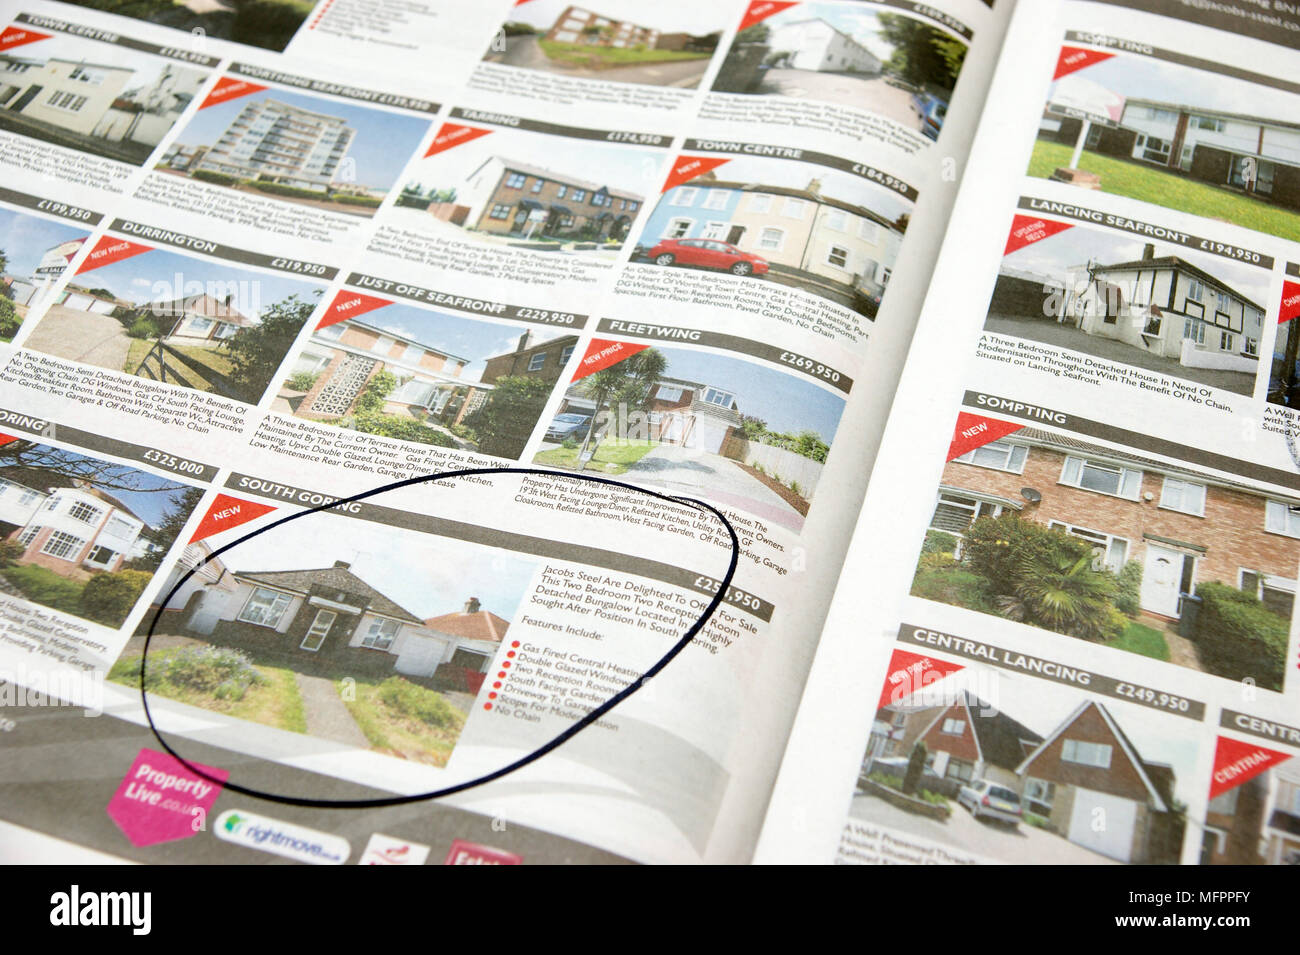 Affordable homes / properties for sale marked off in property pages of local newpaper - Stock Image